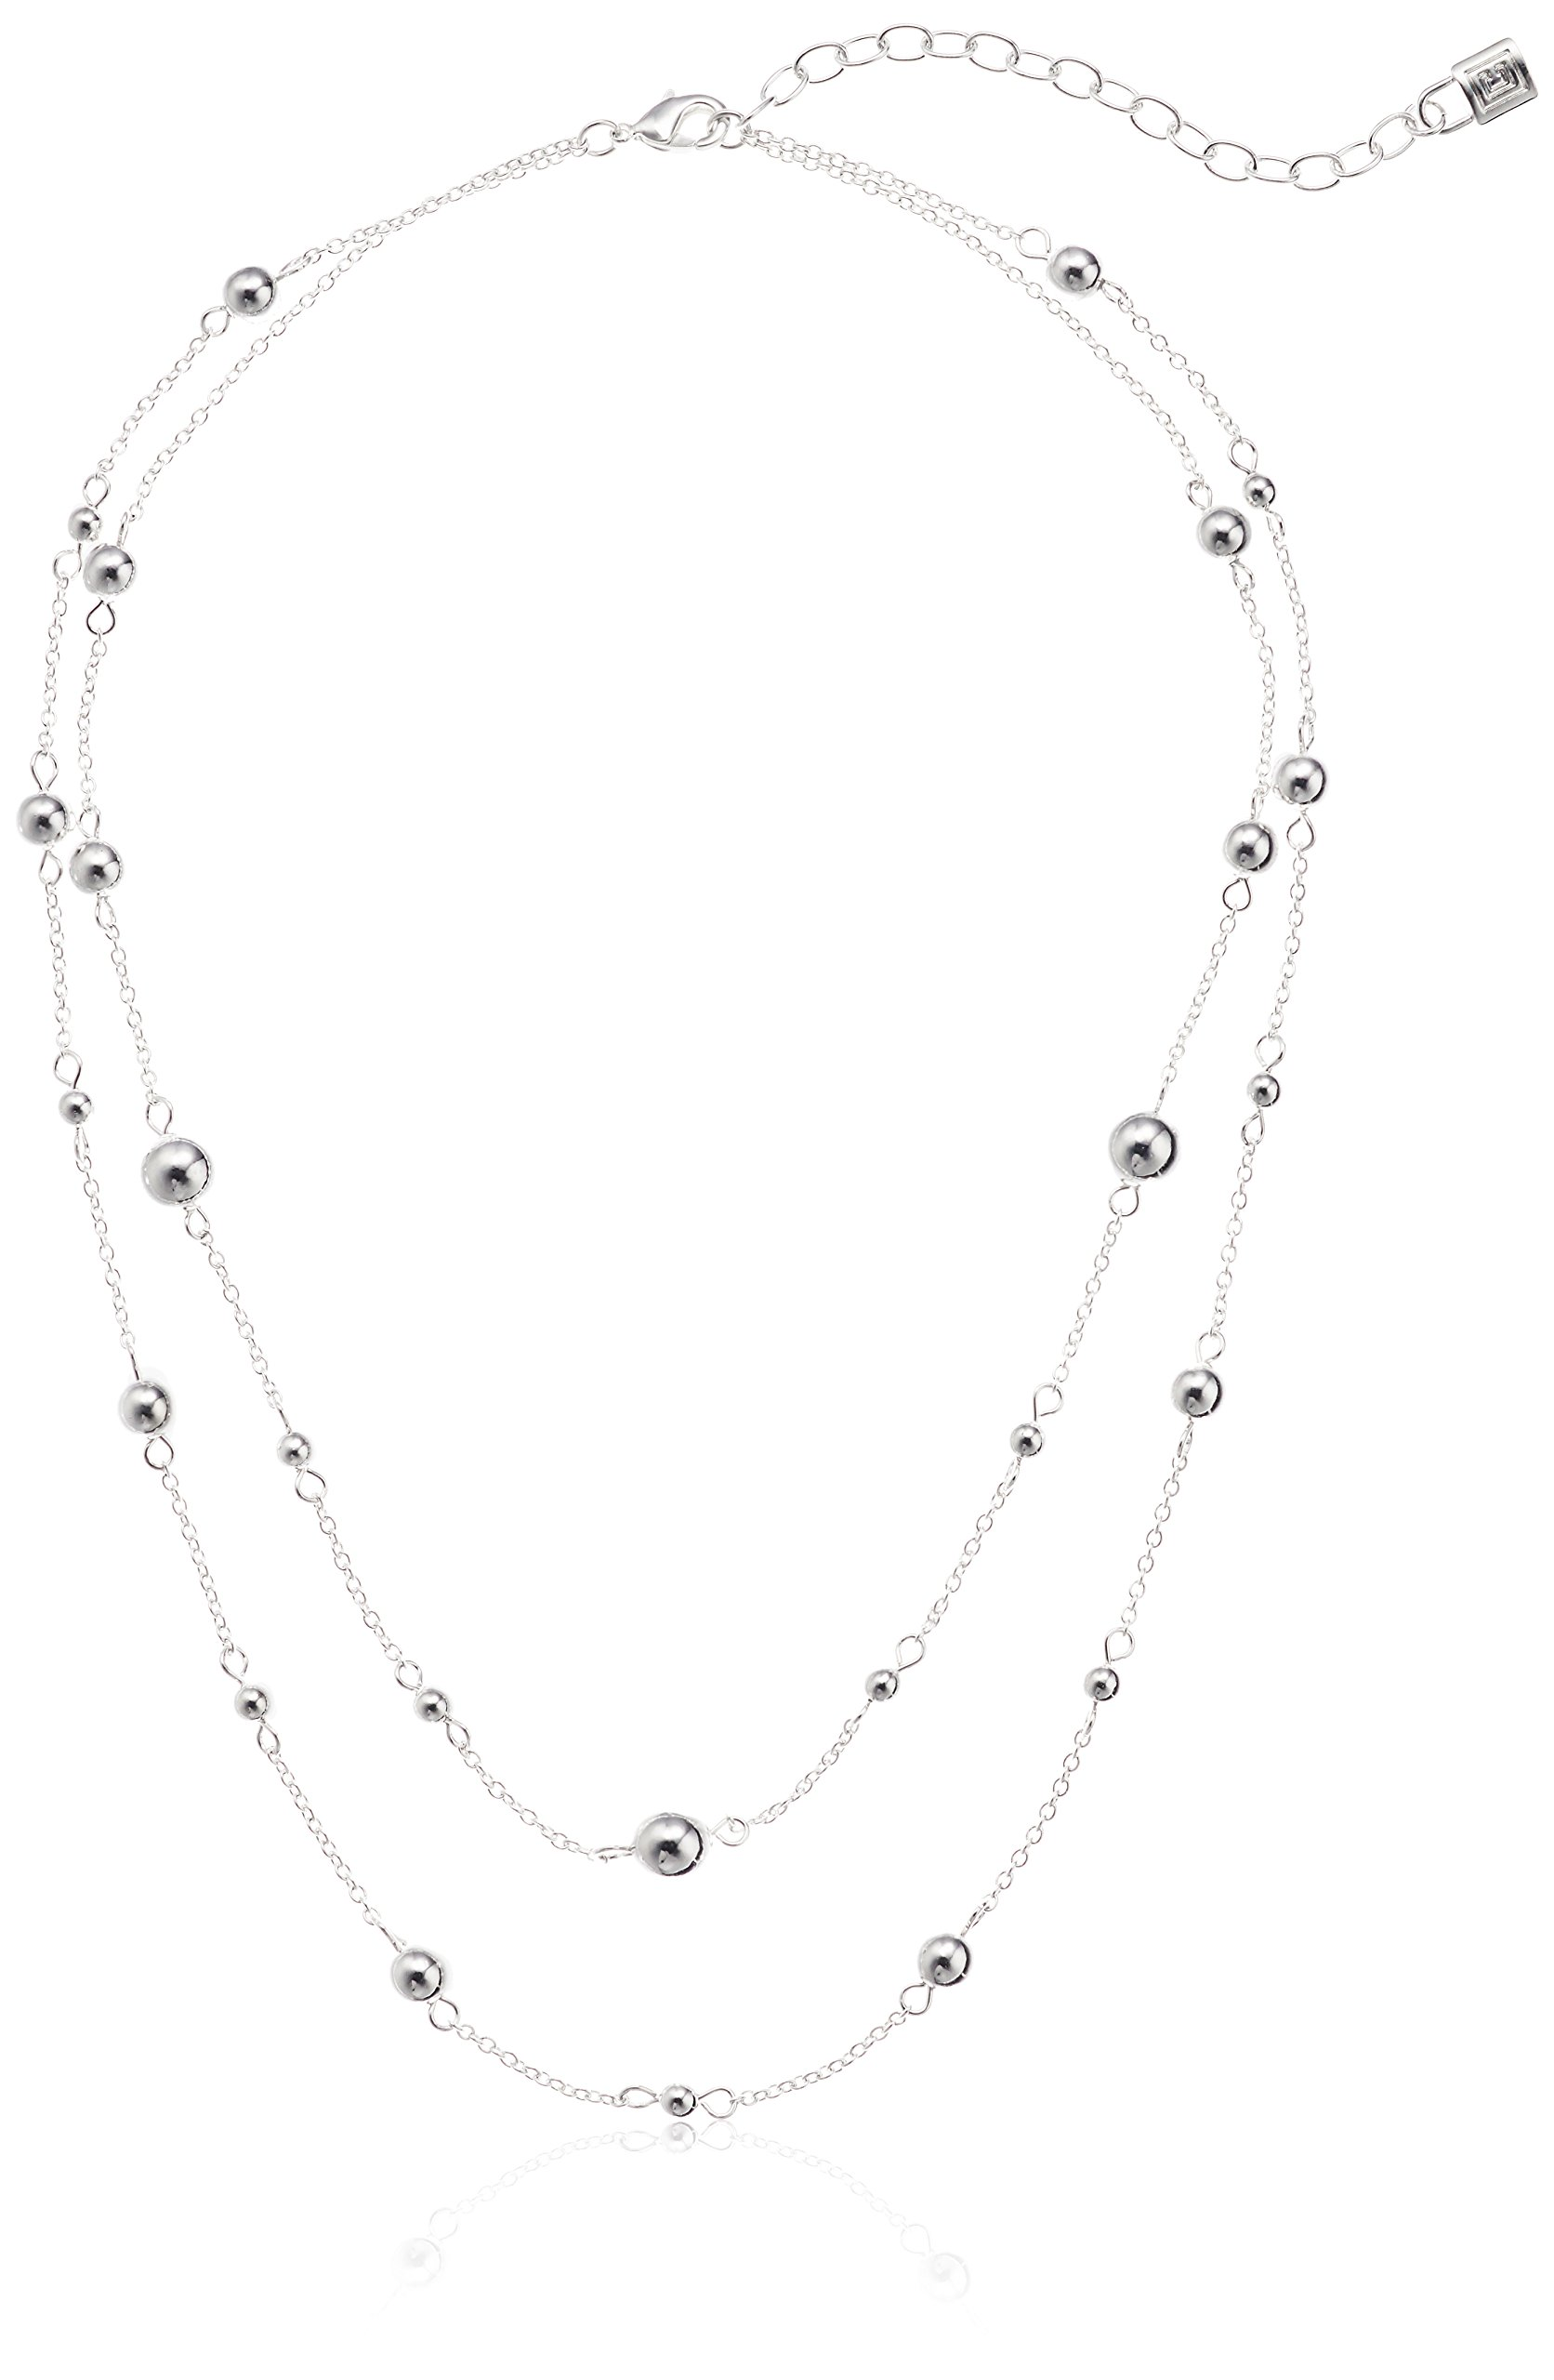 Chaps Women's Double Strand Bead Strand Necklace, Silver